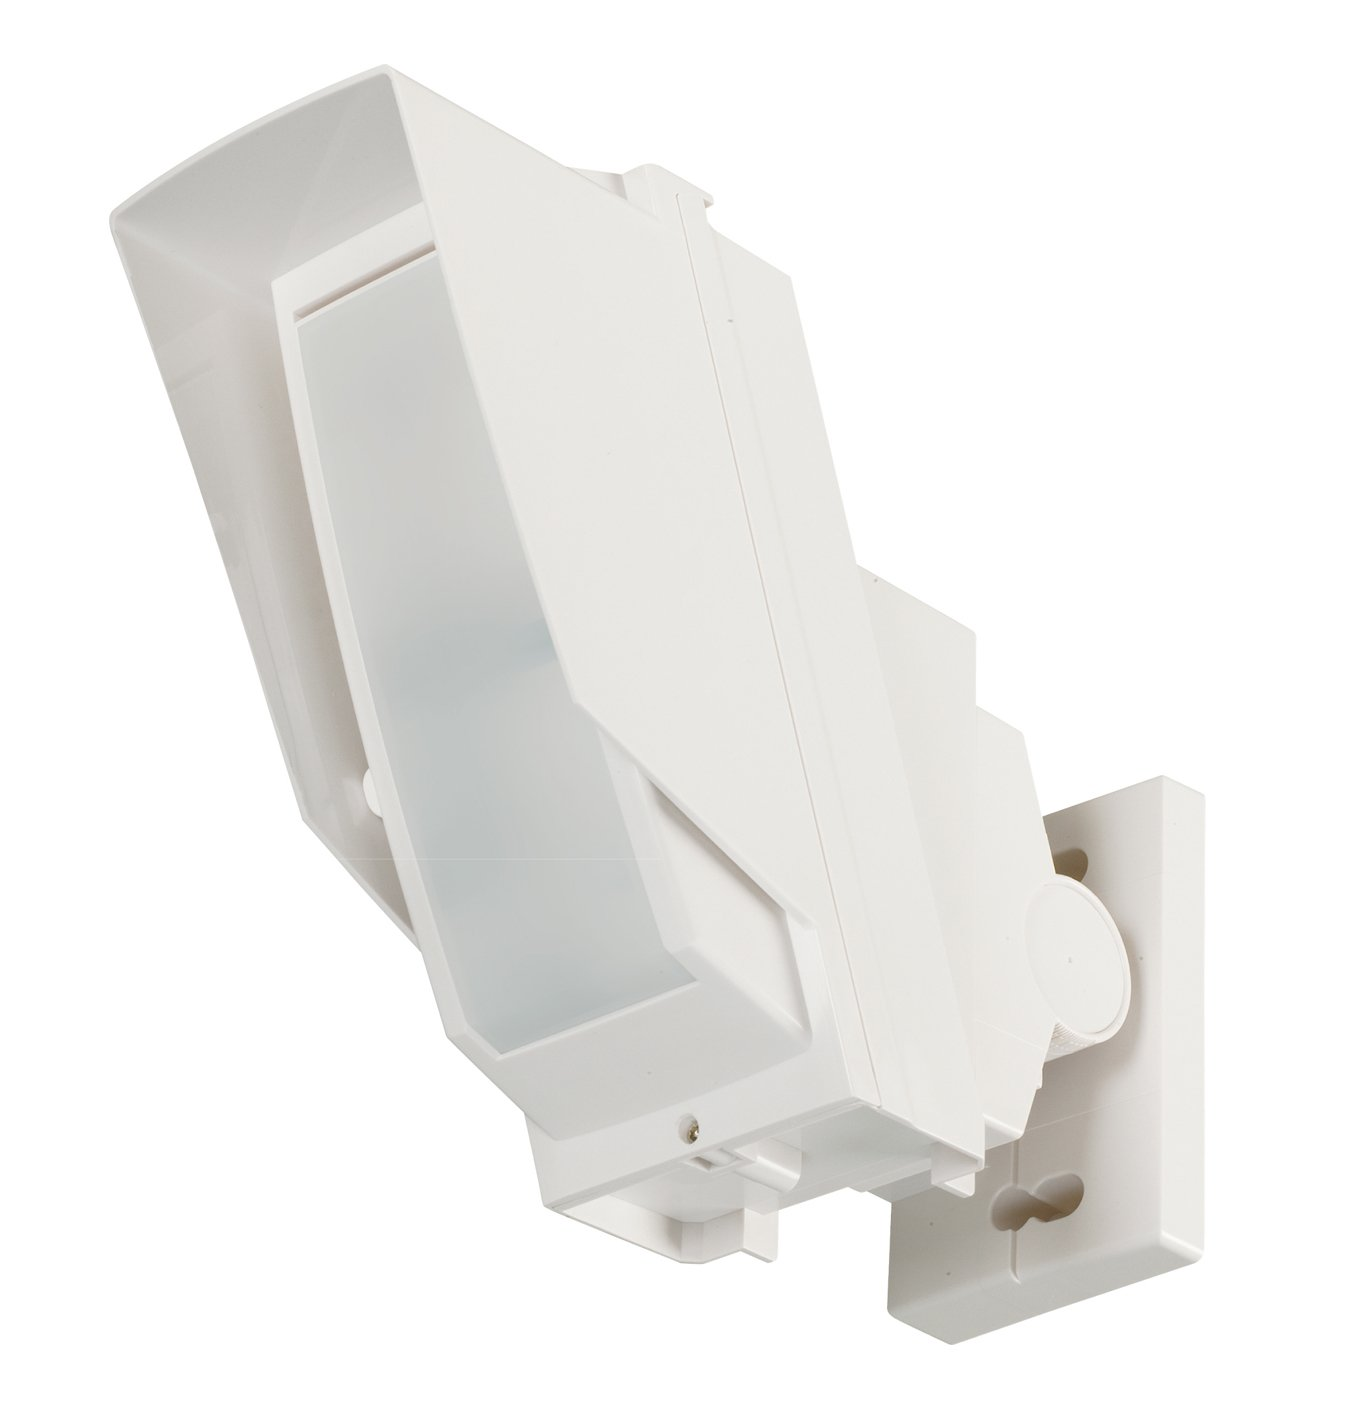 Optex HX-80N Stable Outdoor Curtain PIR Motion Sensor by Optex